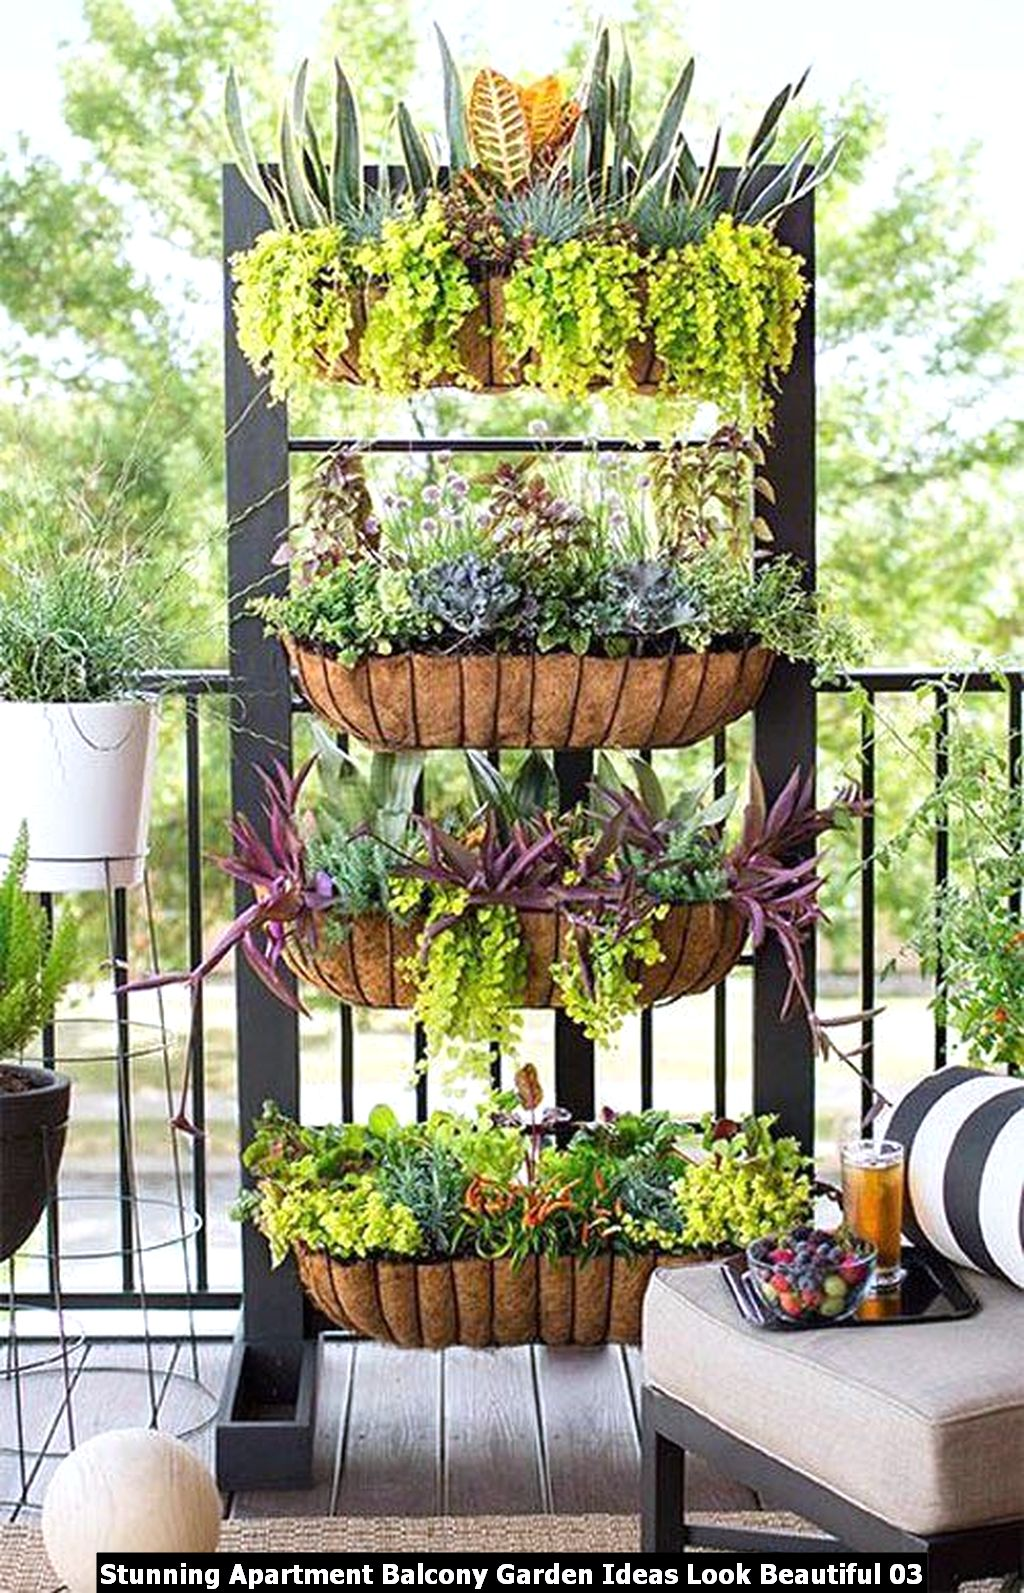 Stunning Apartment Balcony Garden Ideas Look Beautiful 03